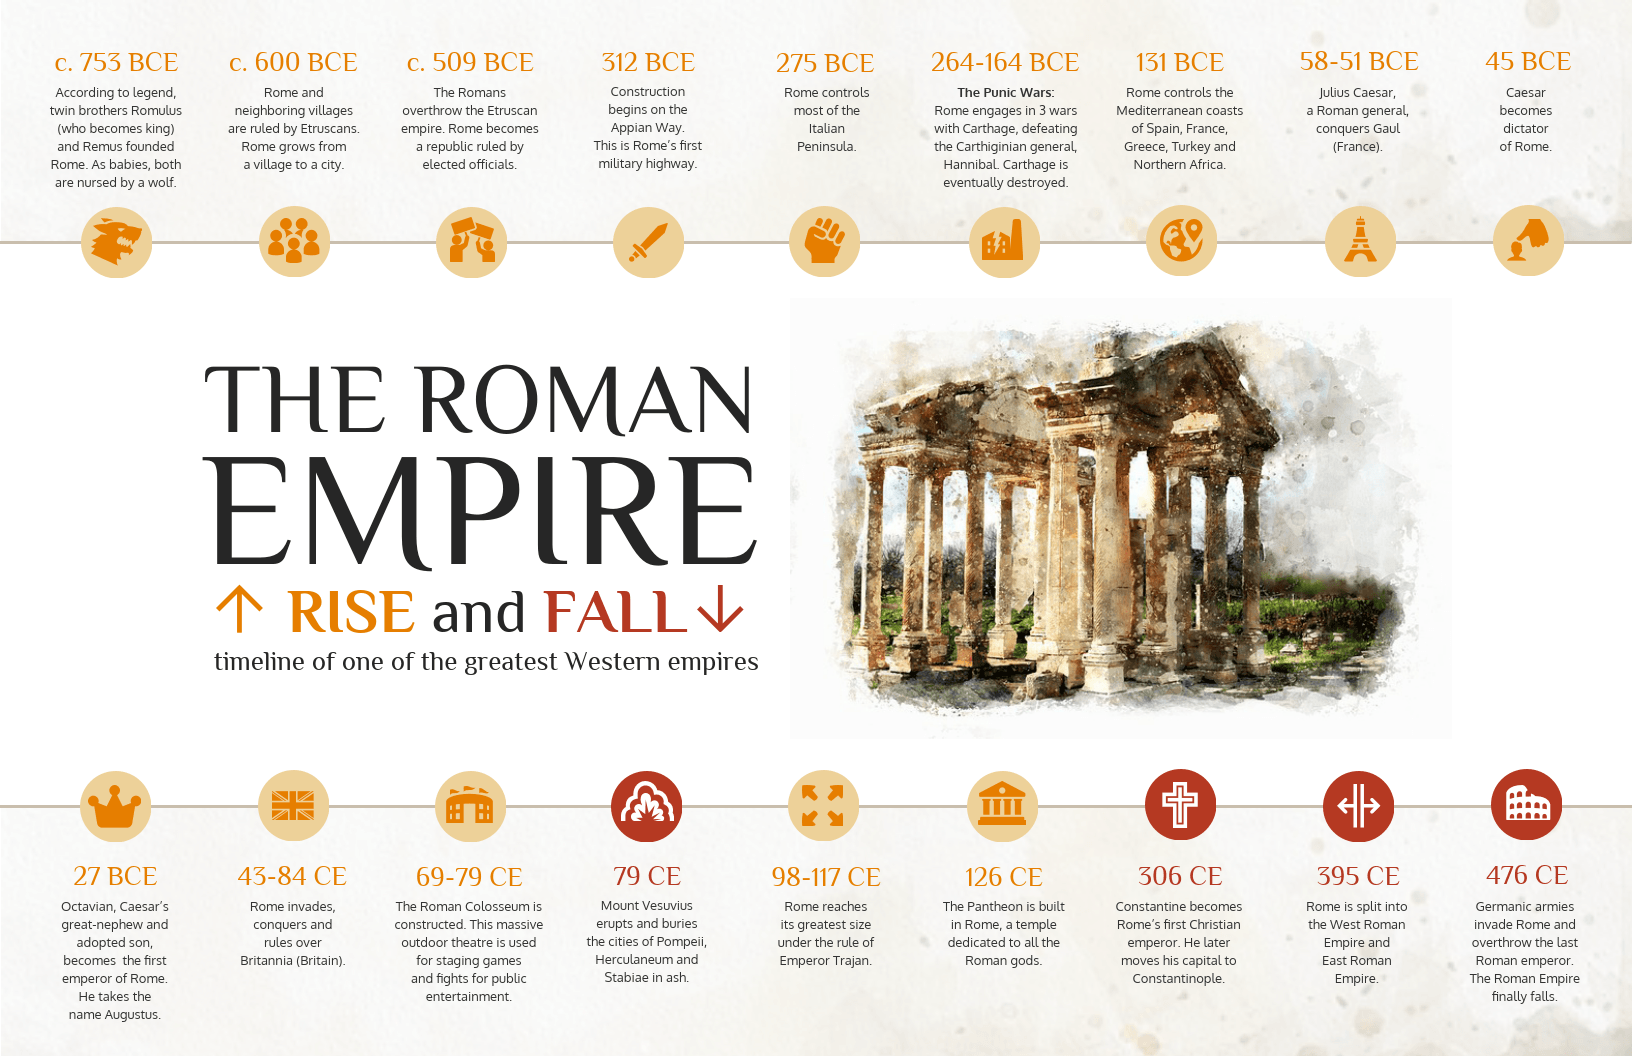 history timeline infographic venngage